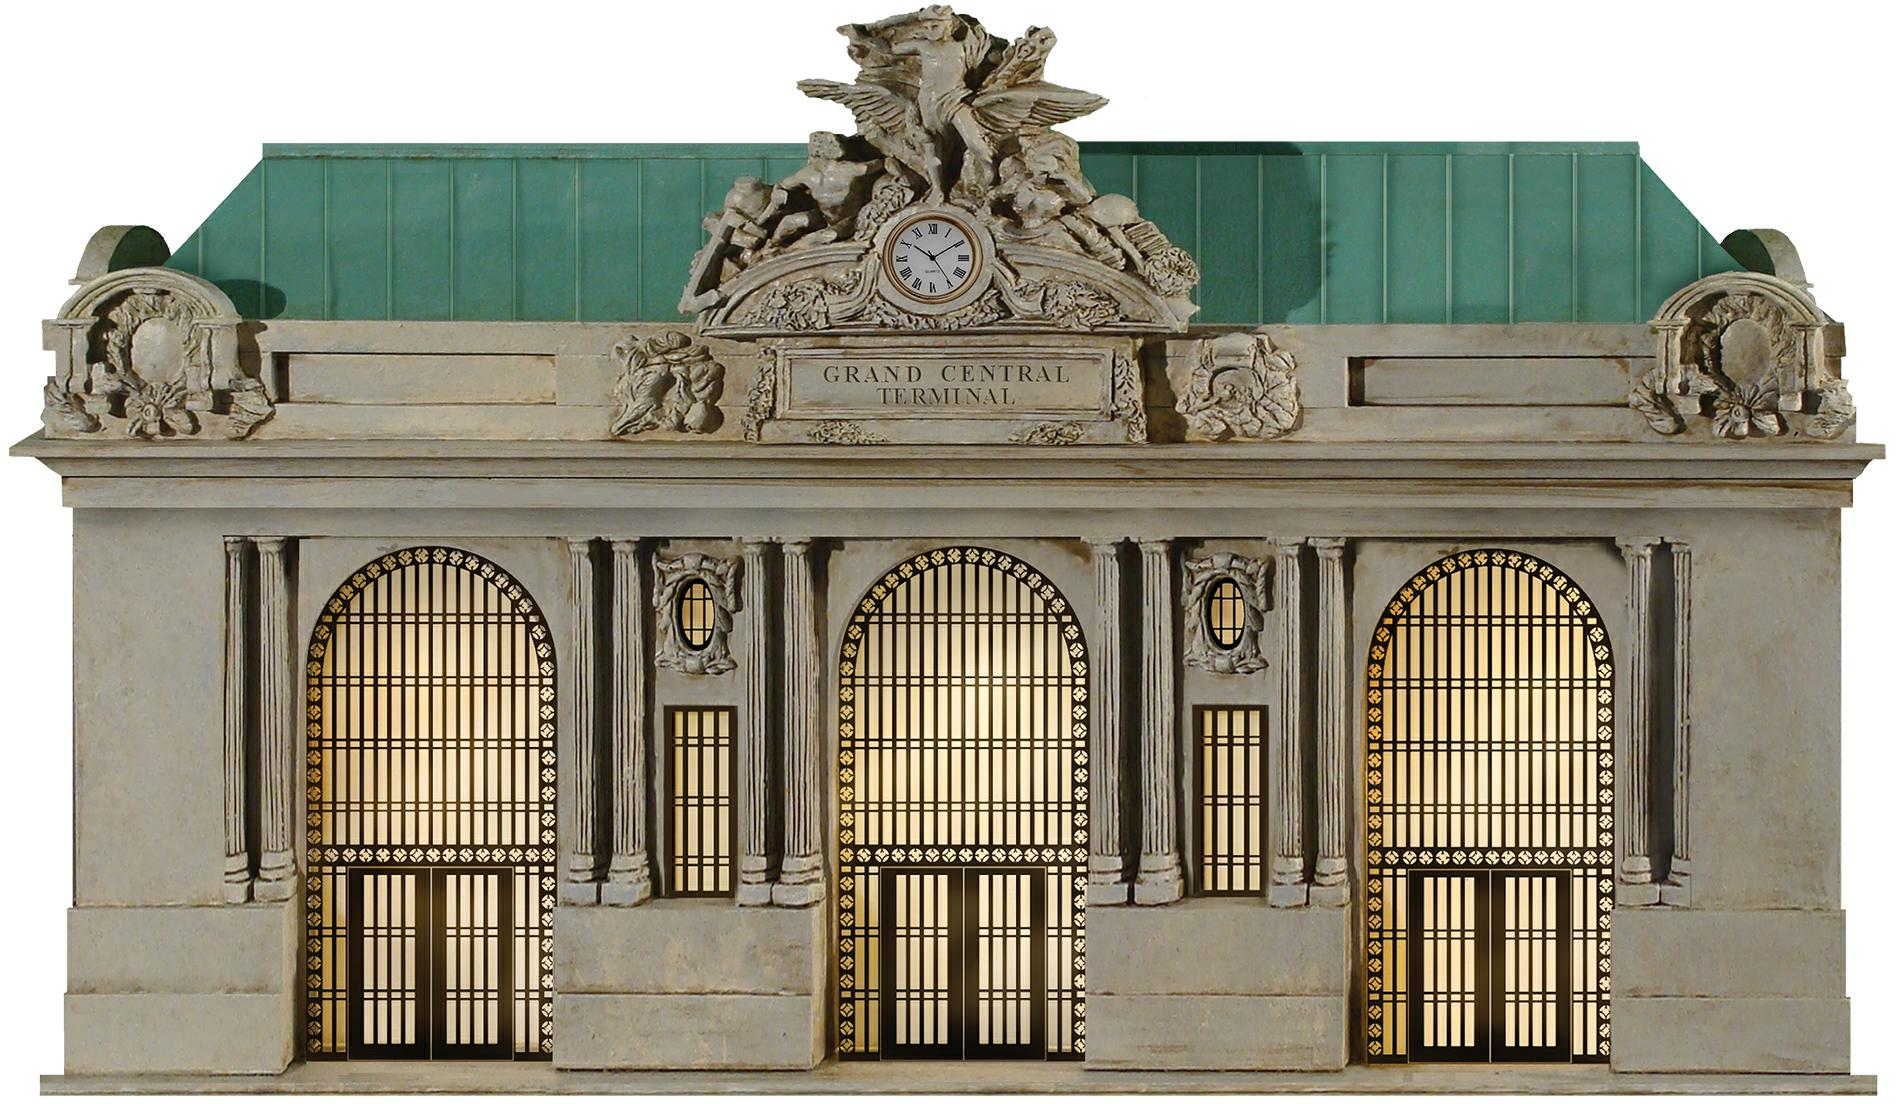 100th Anniversary Grand Central Terminal front view image